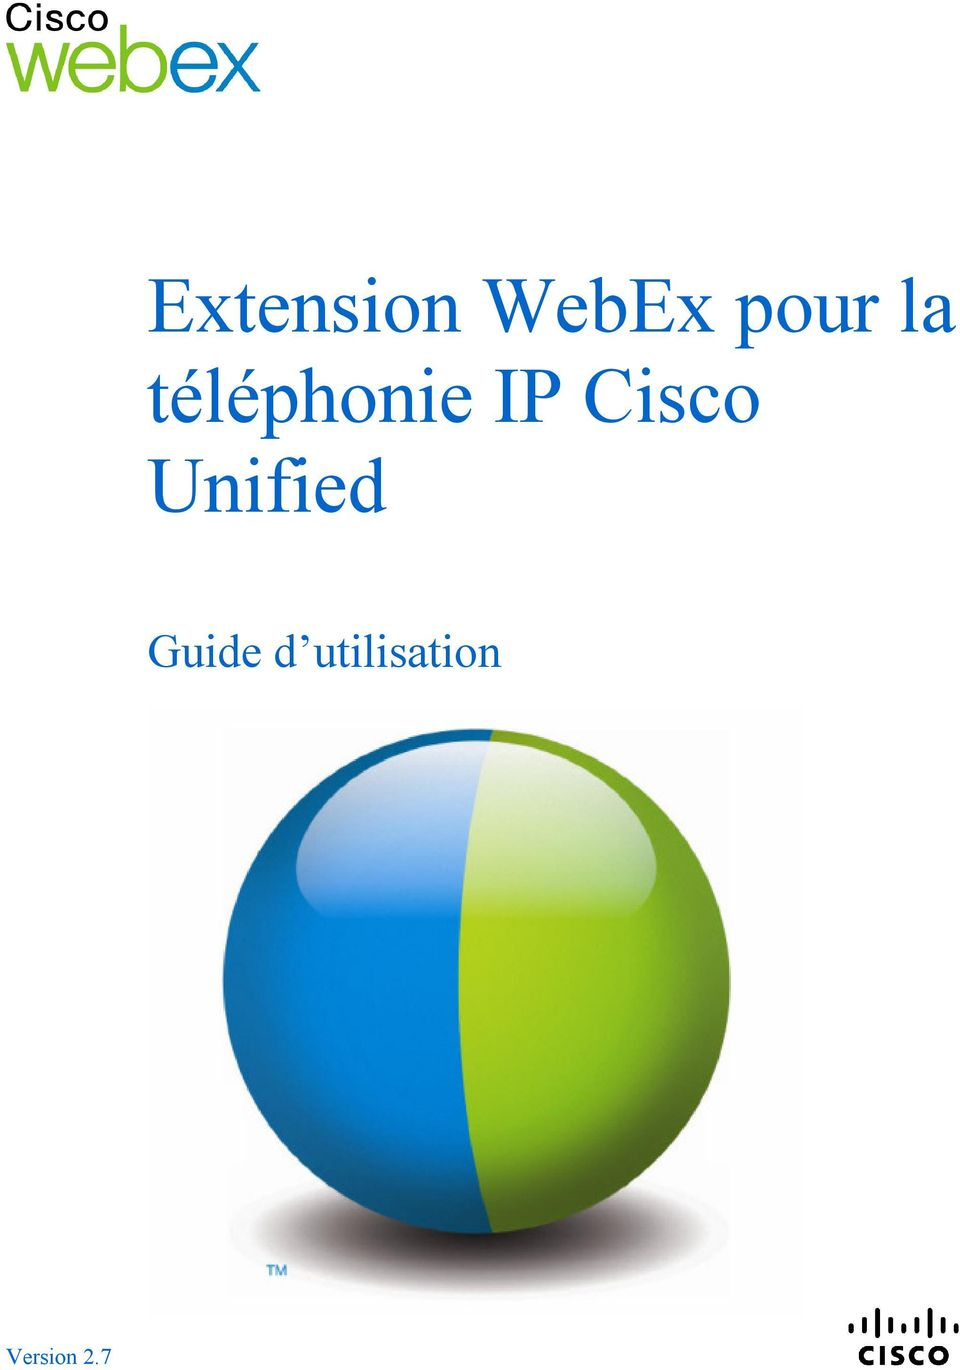 Cisco Unified Guide